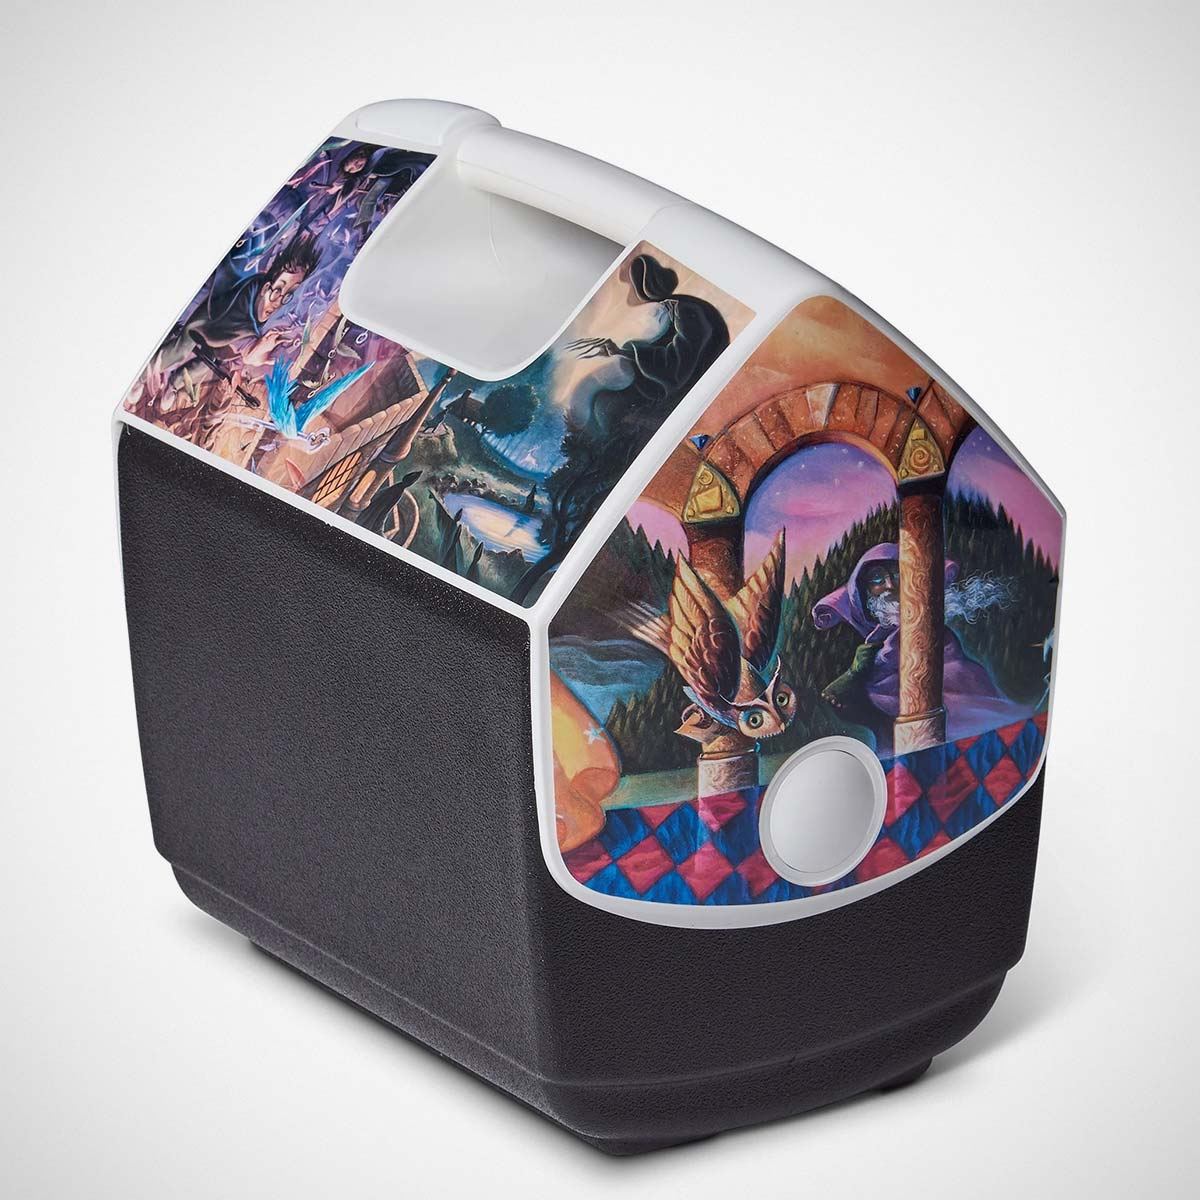 Igloo Harry Potter Cooler Collection